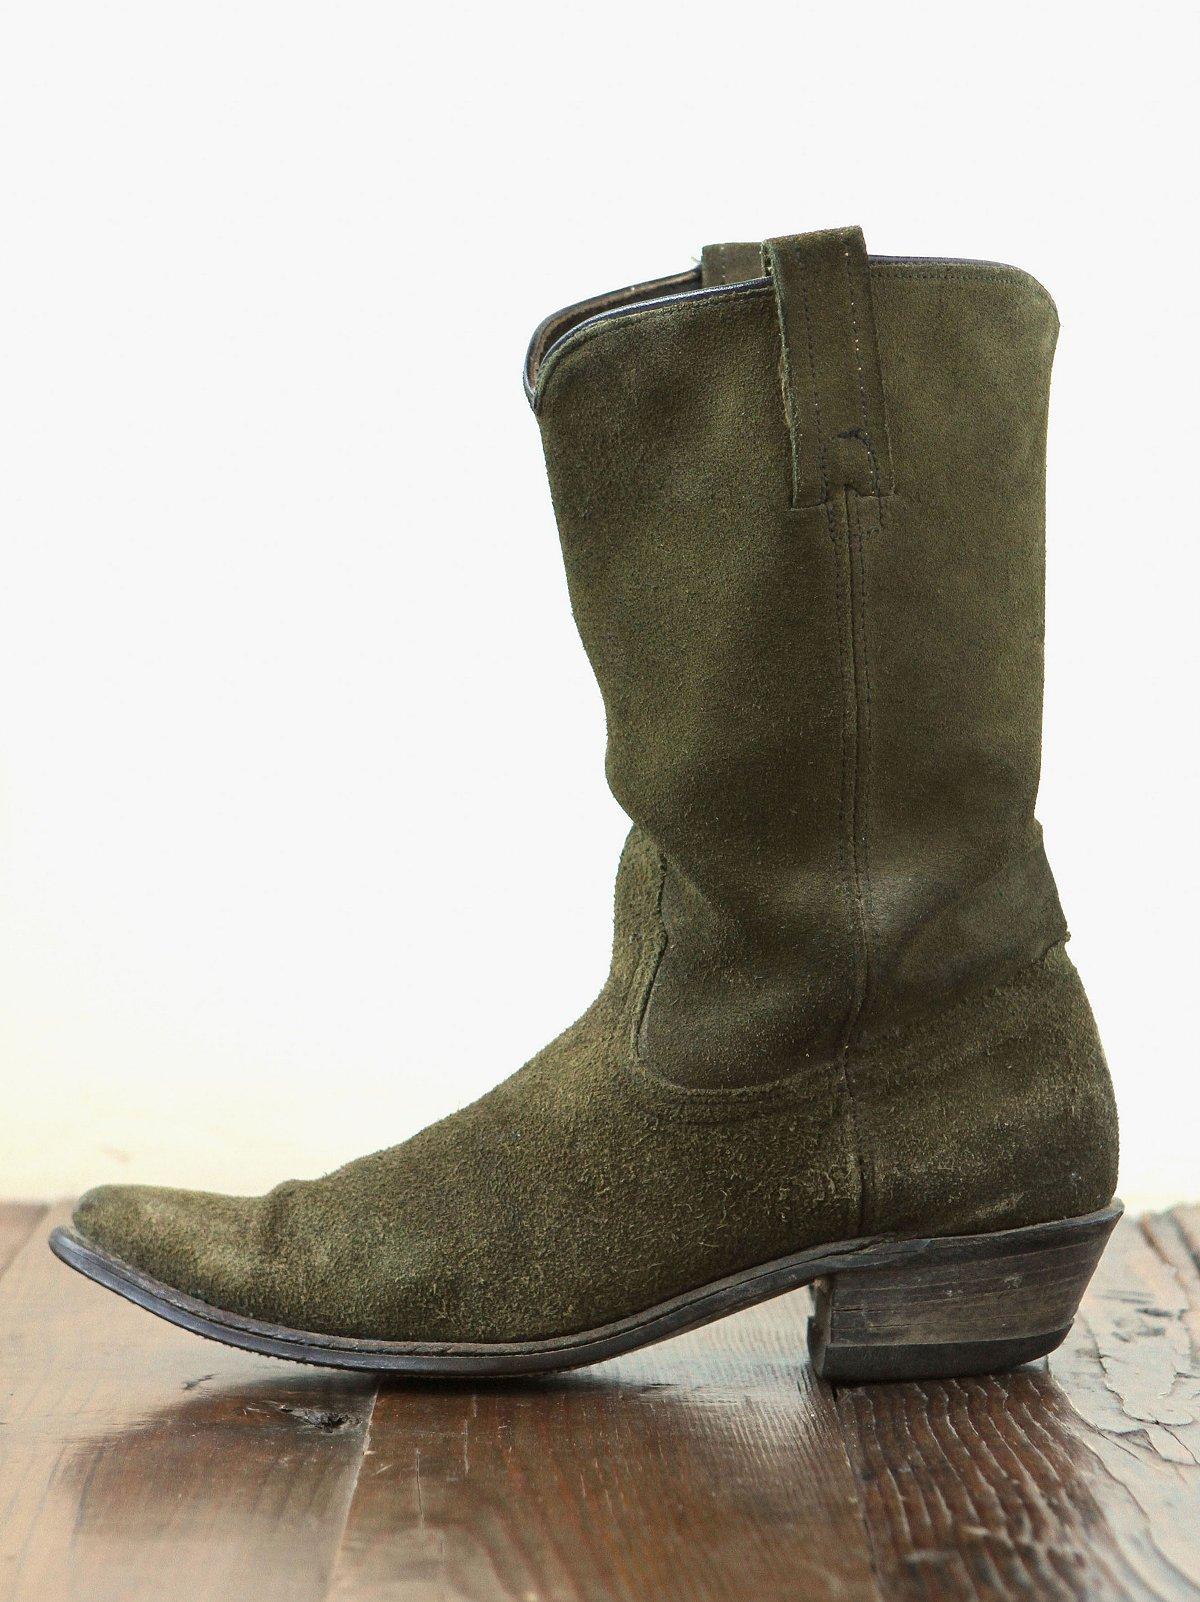 Vintage Suede Tall Boots